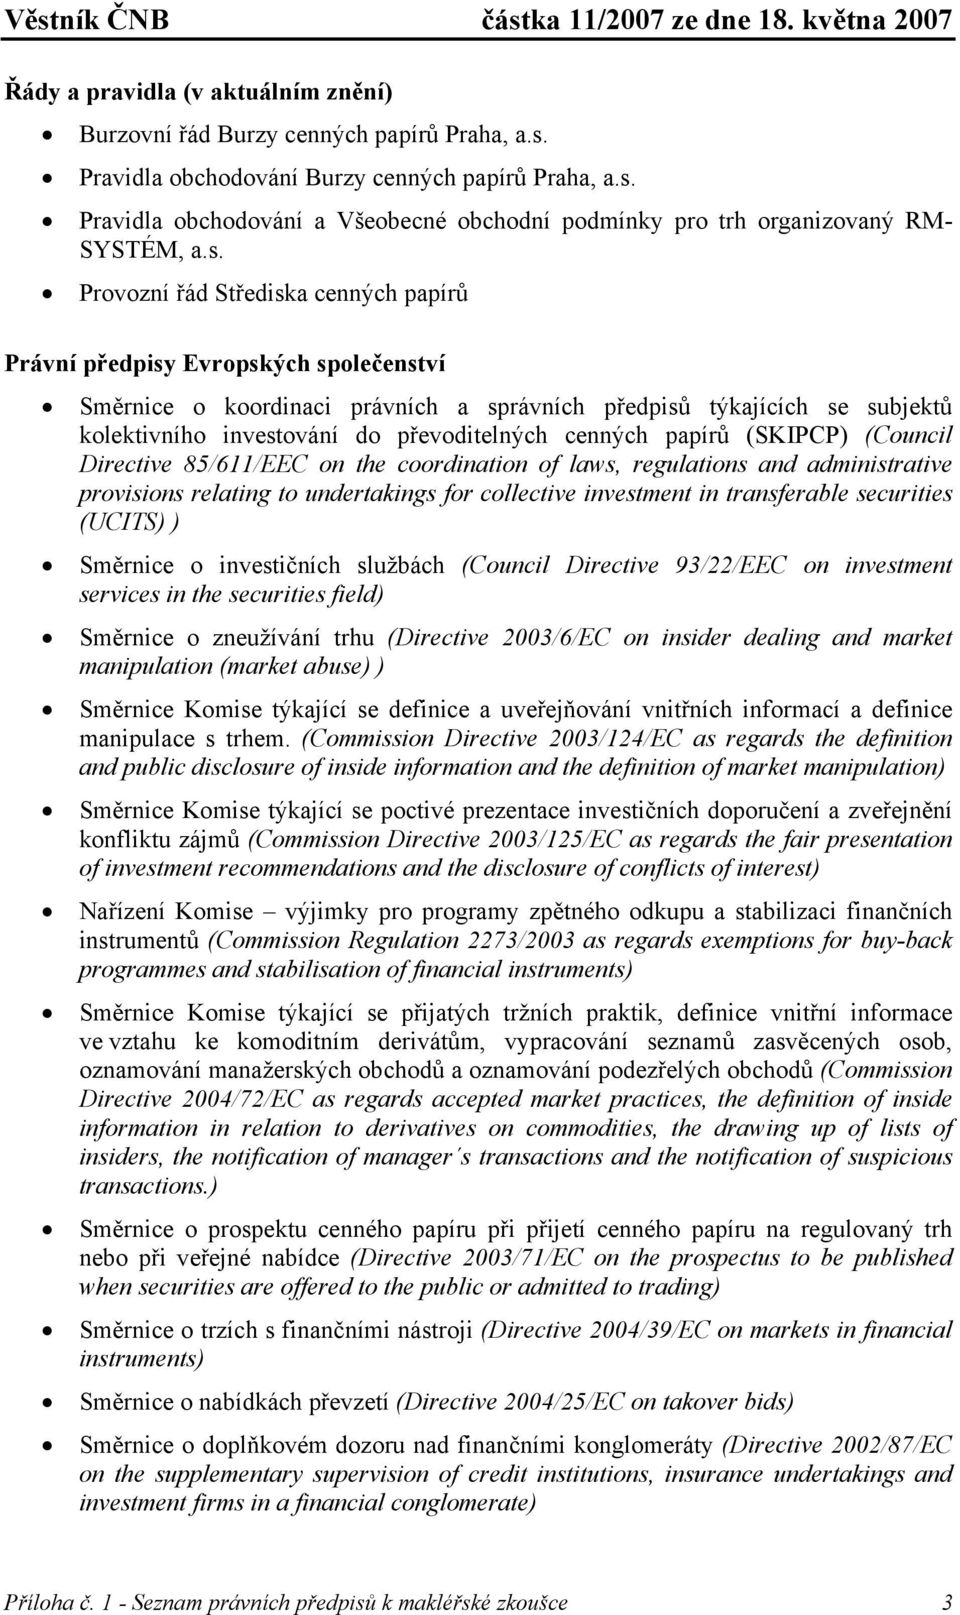 cenných papírů (SKIPCP) (Council Directive 85/611/EEC on the coordination of laws, regulations and administrative provisions relating to undertakings for collective investment in transferable